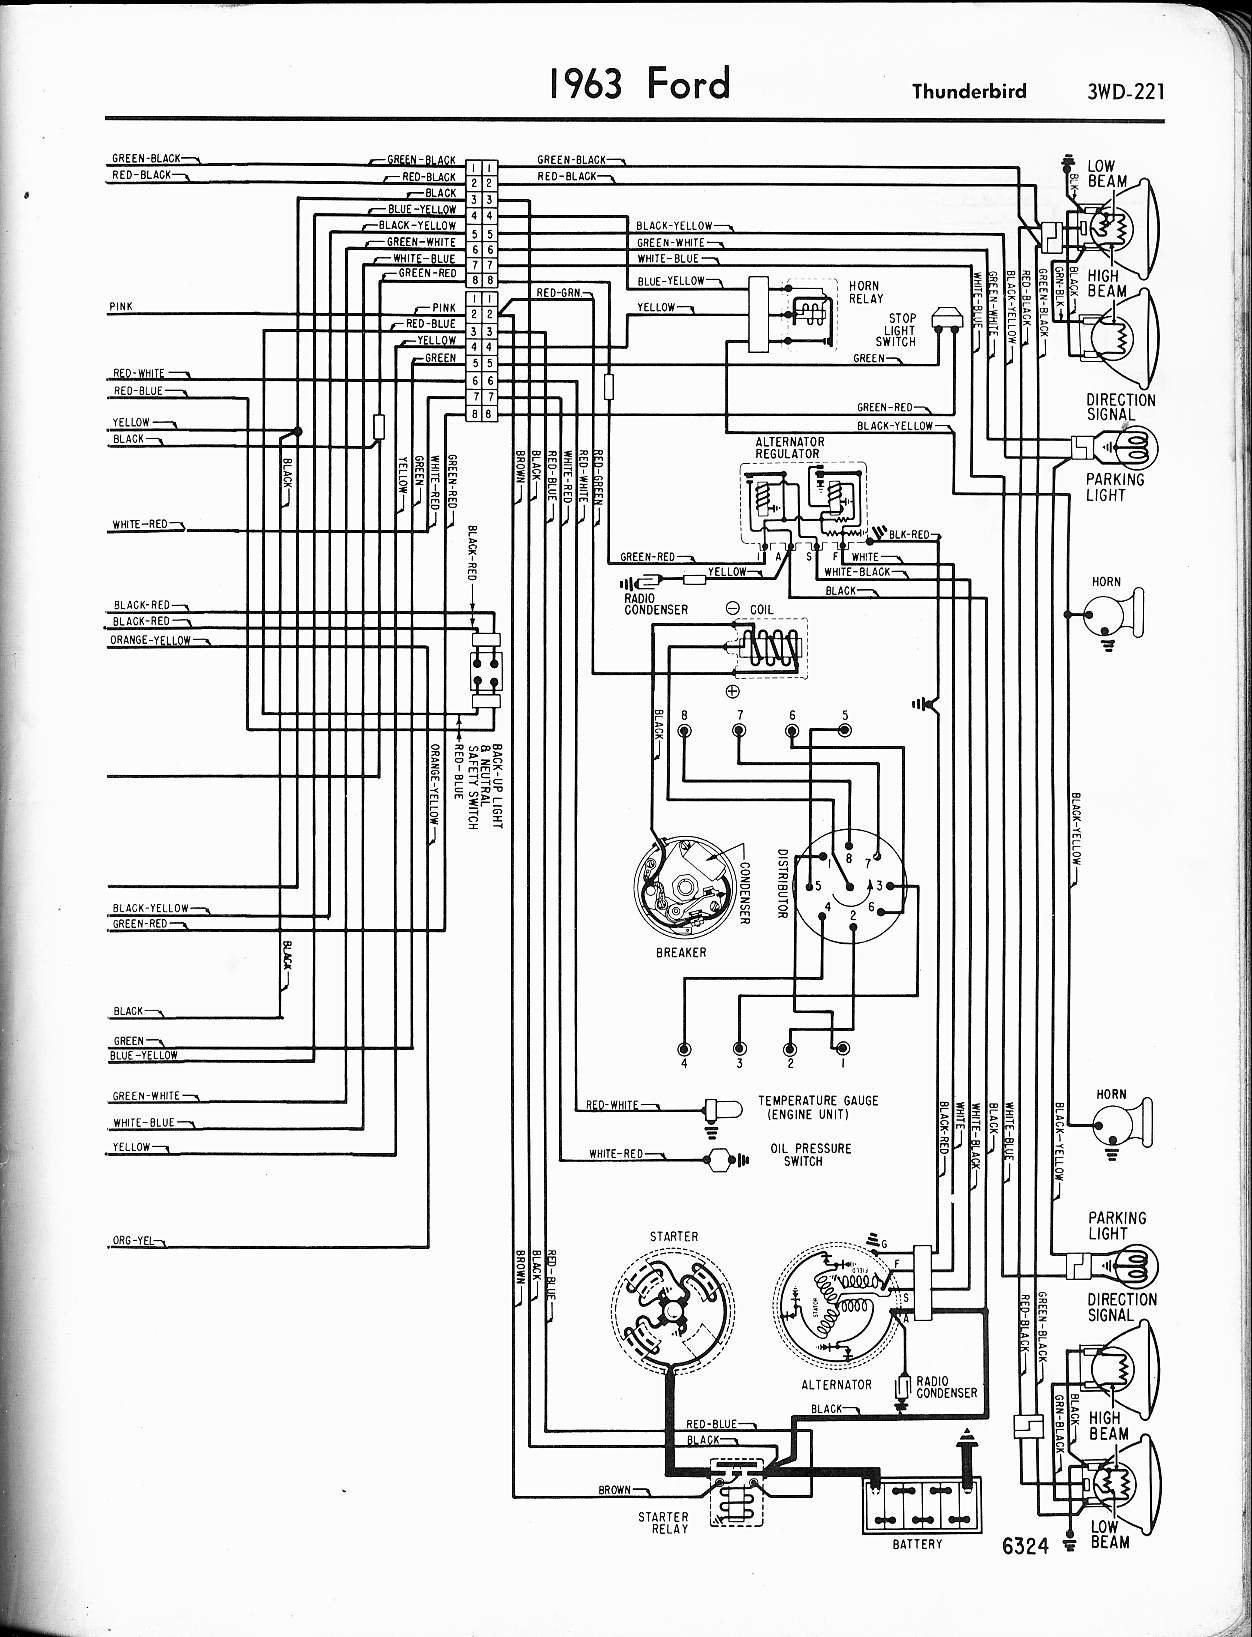 NF_7270] Wiring Schematic For 1963 Ford F 100 Inki Emba Joni Gray Cajos Mohammedshrine Librar Wiring 101